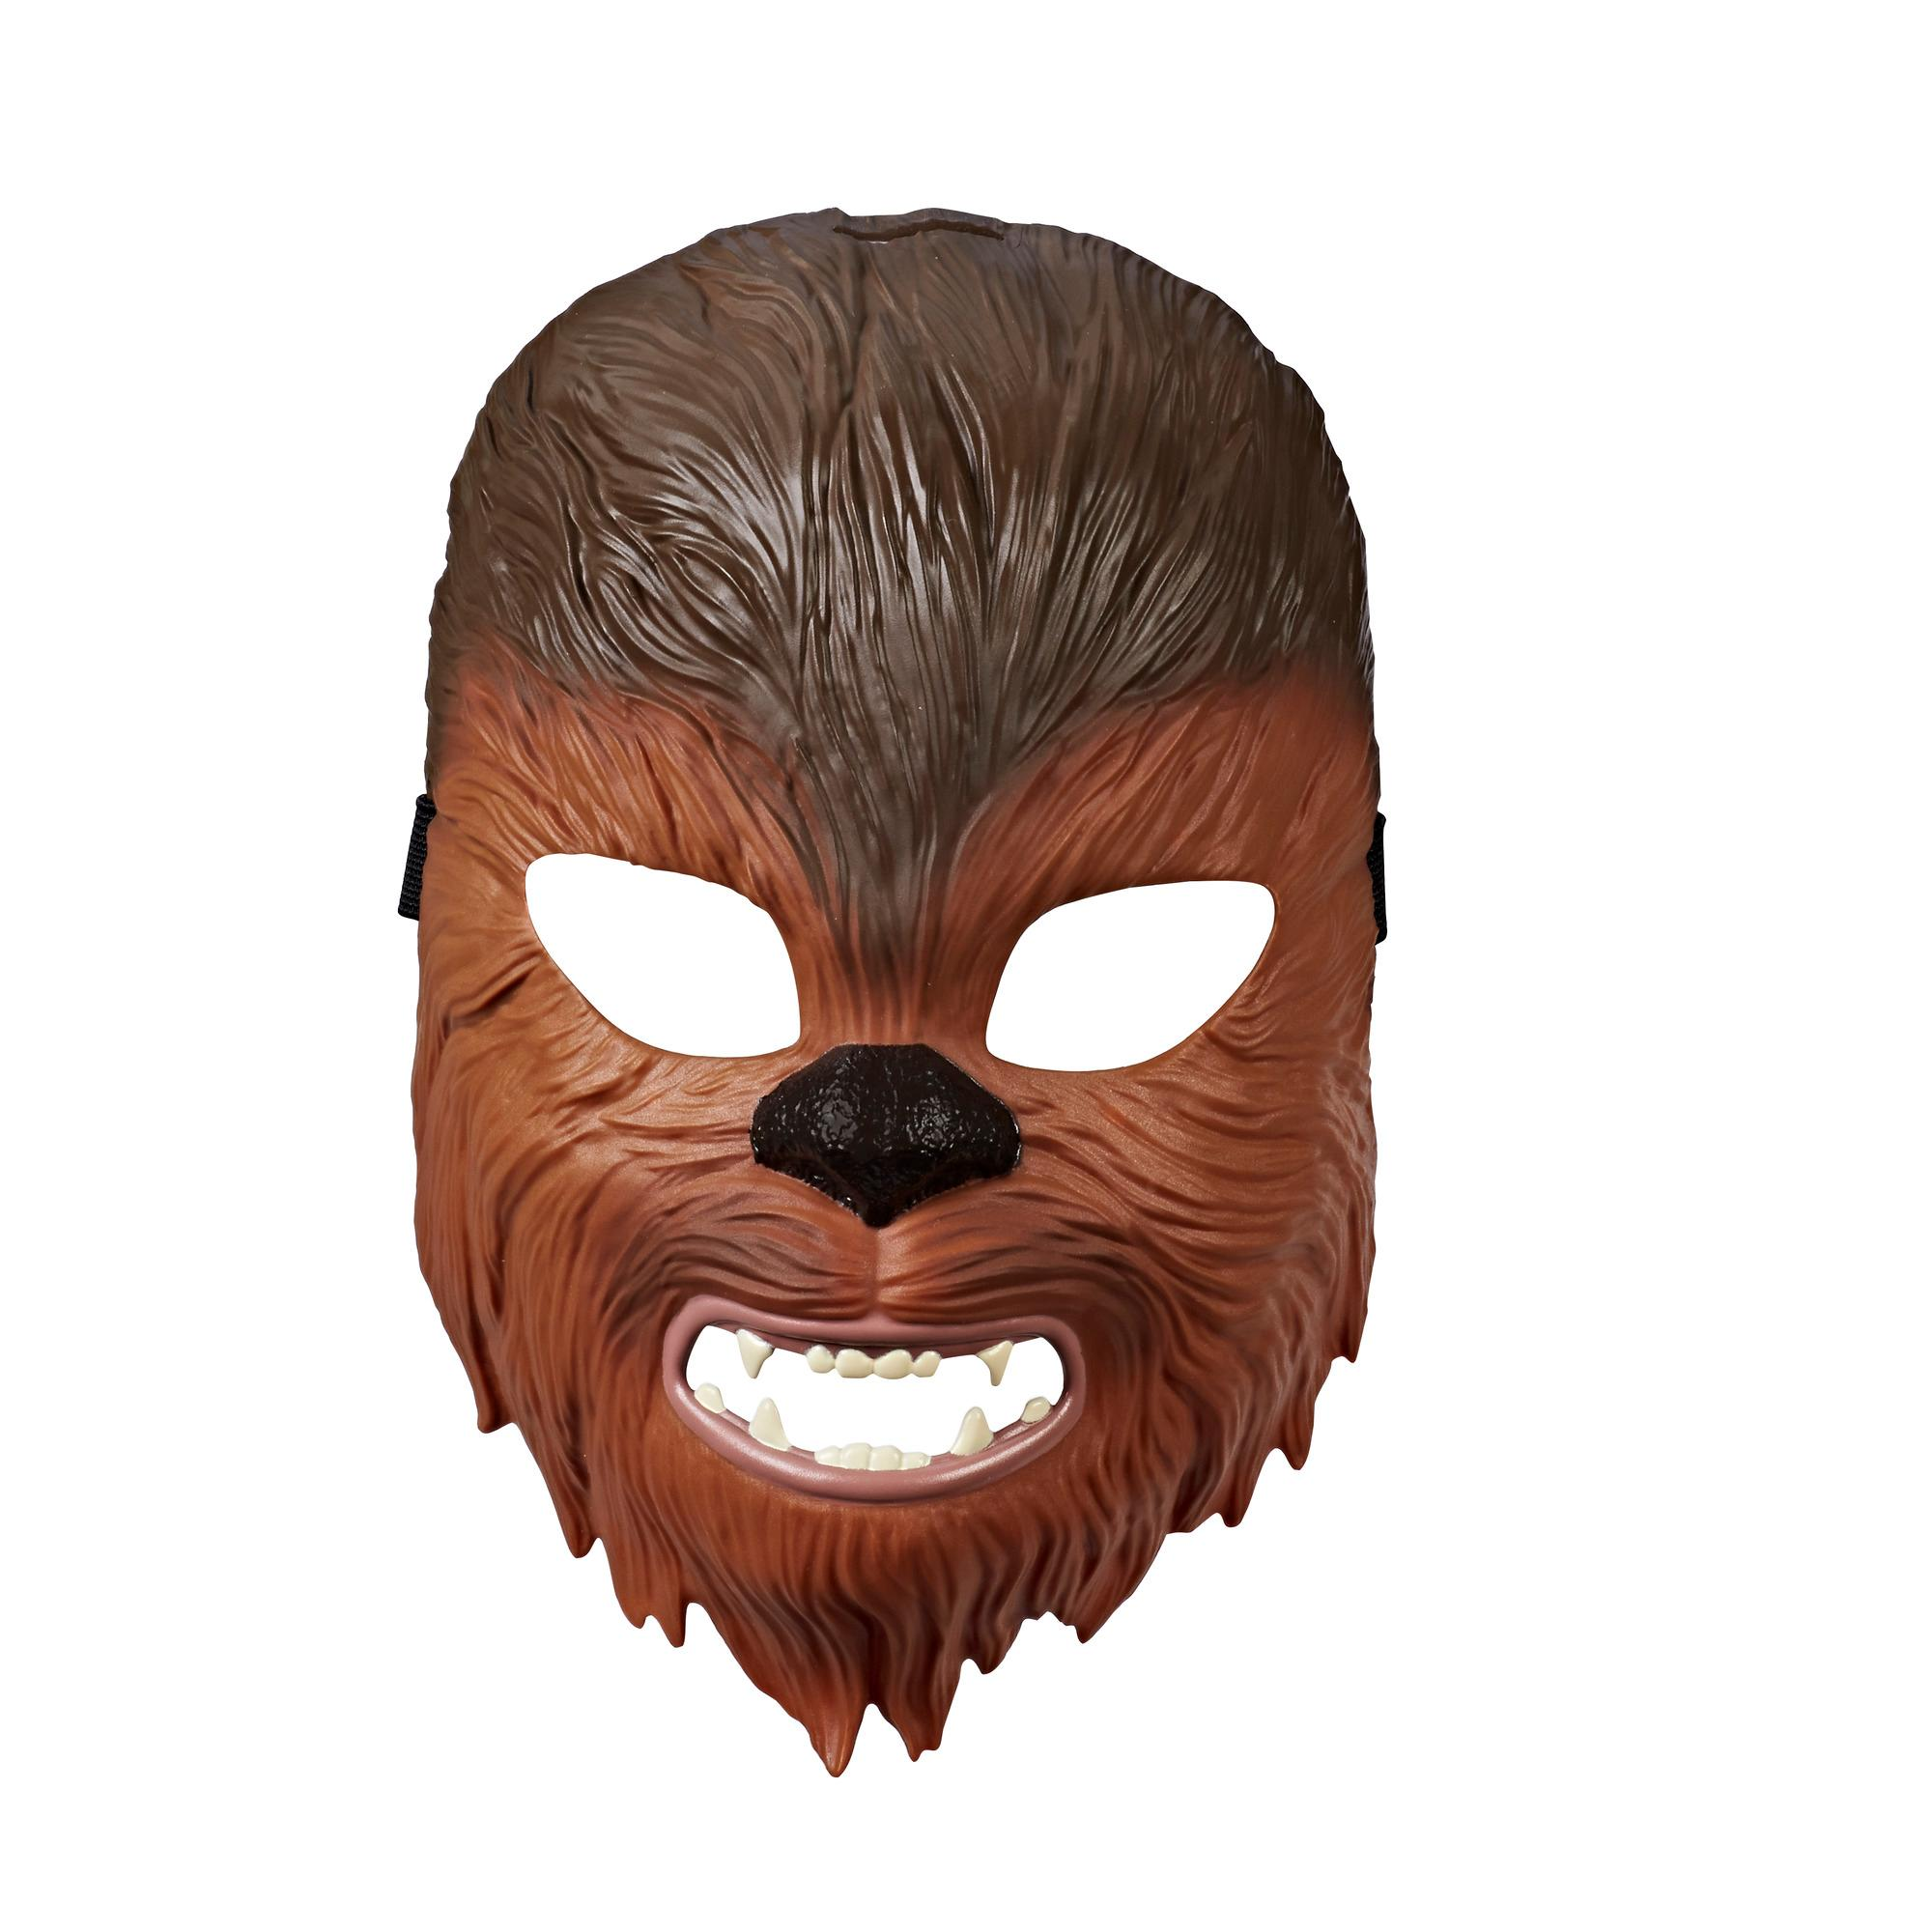 Star Wars Solo: A Star Wars Story Chewbacca Mask